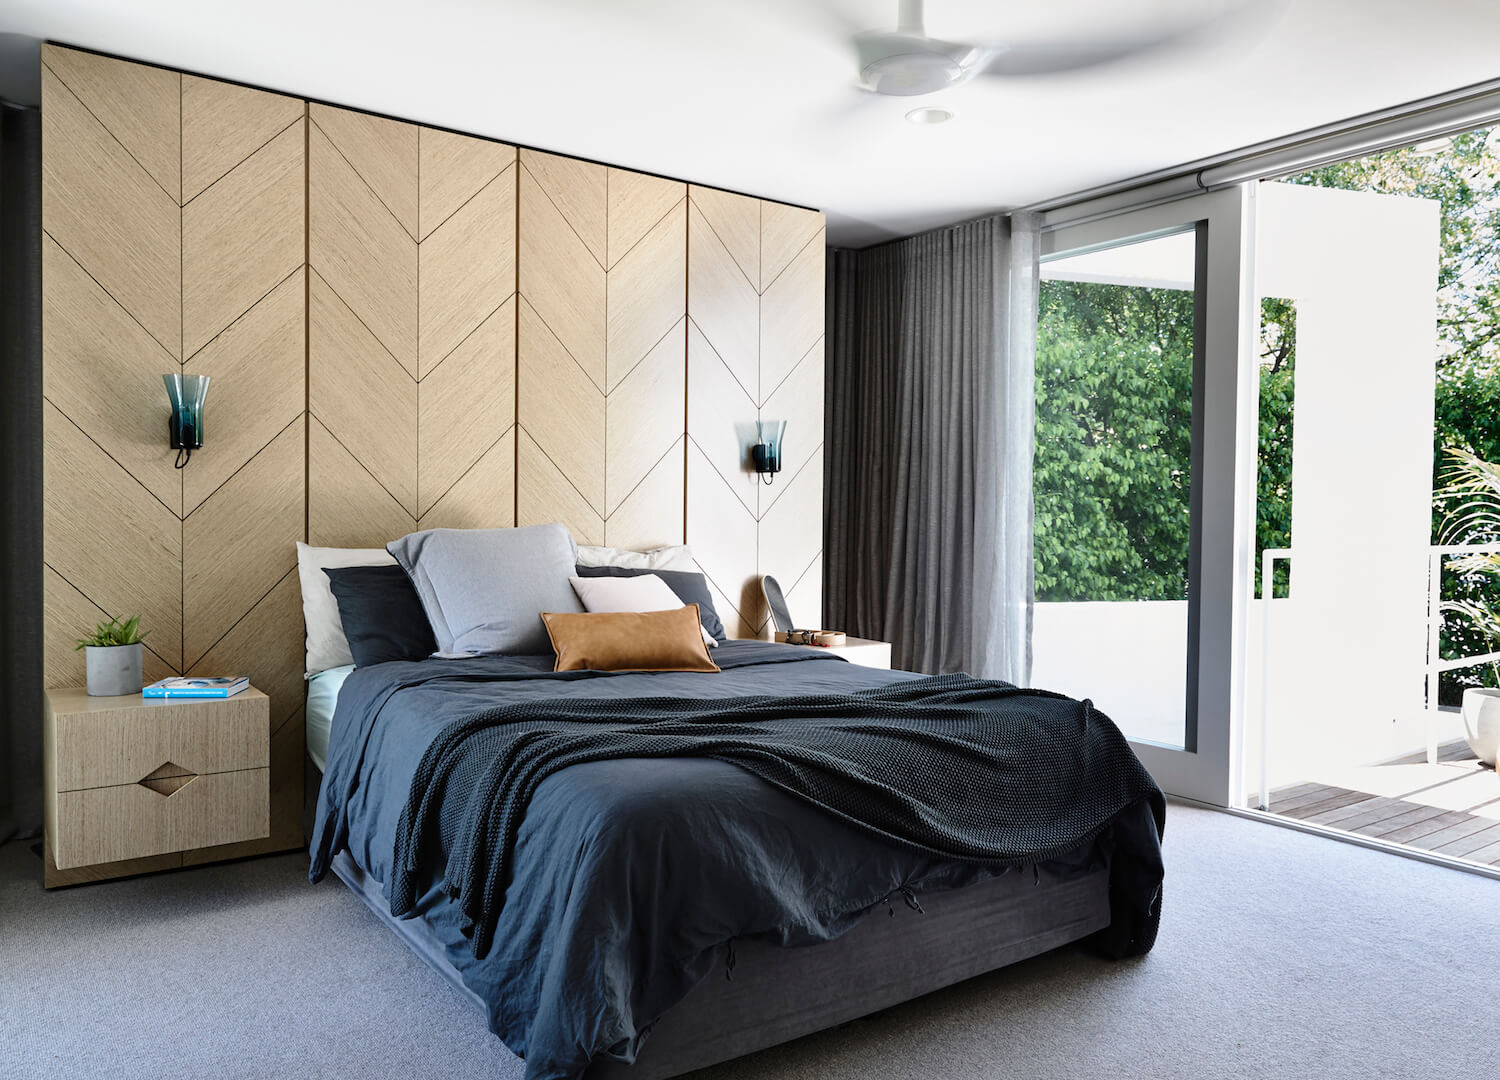 est living designer interview mardi doherty design studio hawthorn res derek swalwell 6